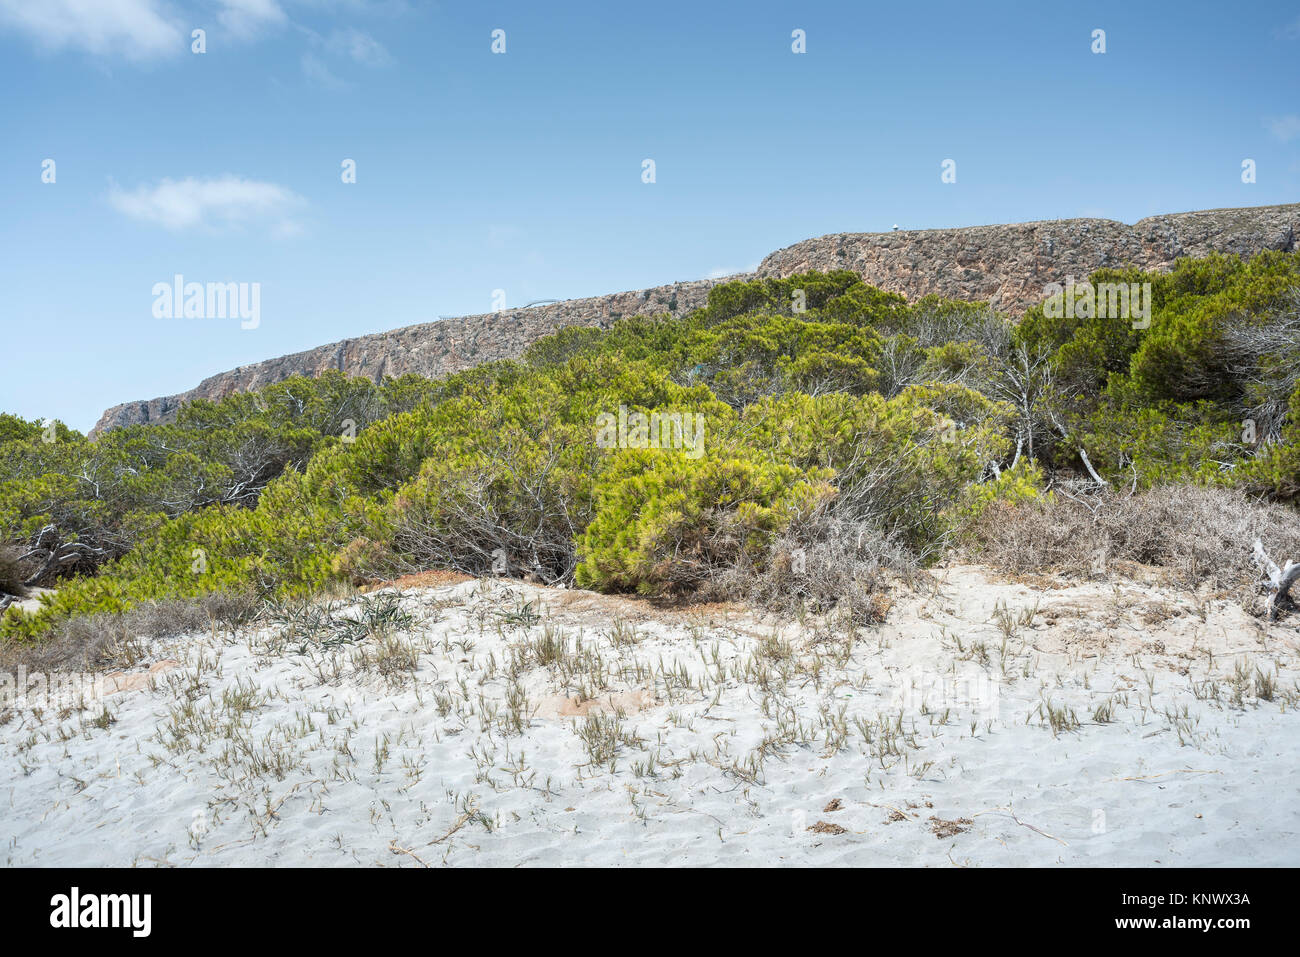 Pine grove of Aleppo Pine, Pinus halepensis, growing on dunes. Photo taken in Santa Pola, Alicante, Spain - Stock Image